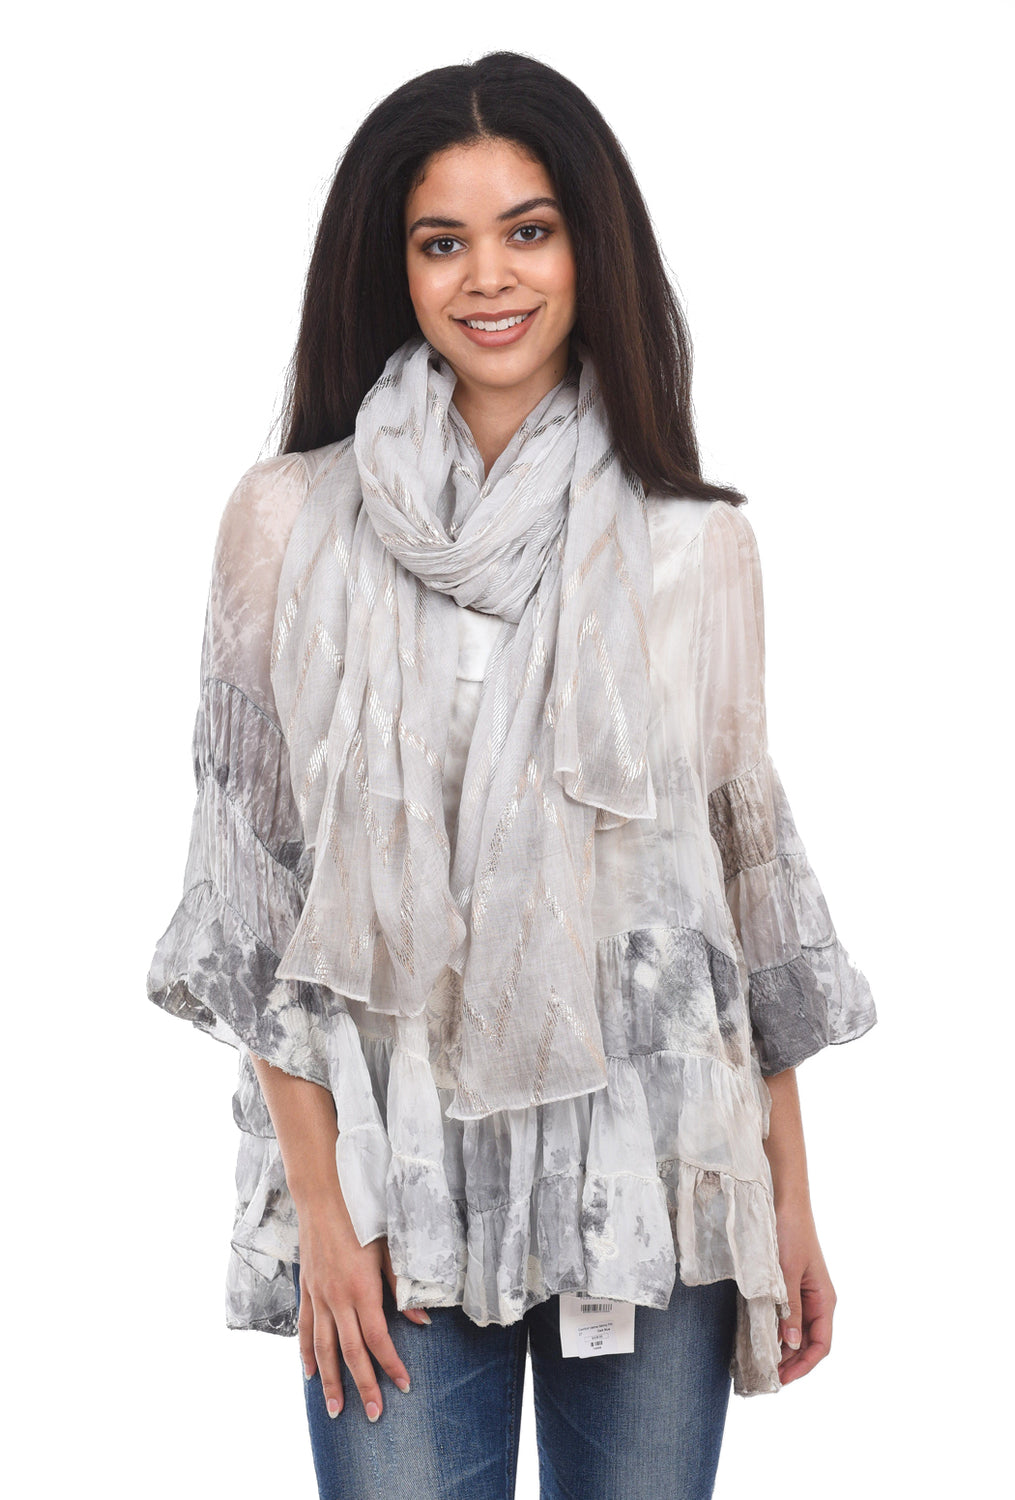 Paisley Road Lurex Accents Scarves, Light Gray